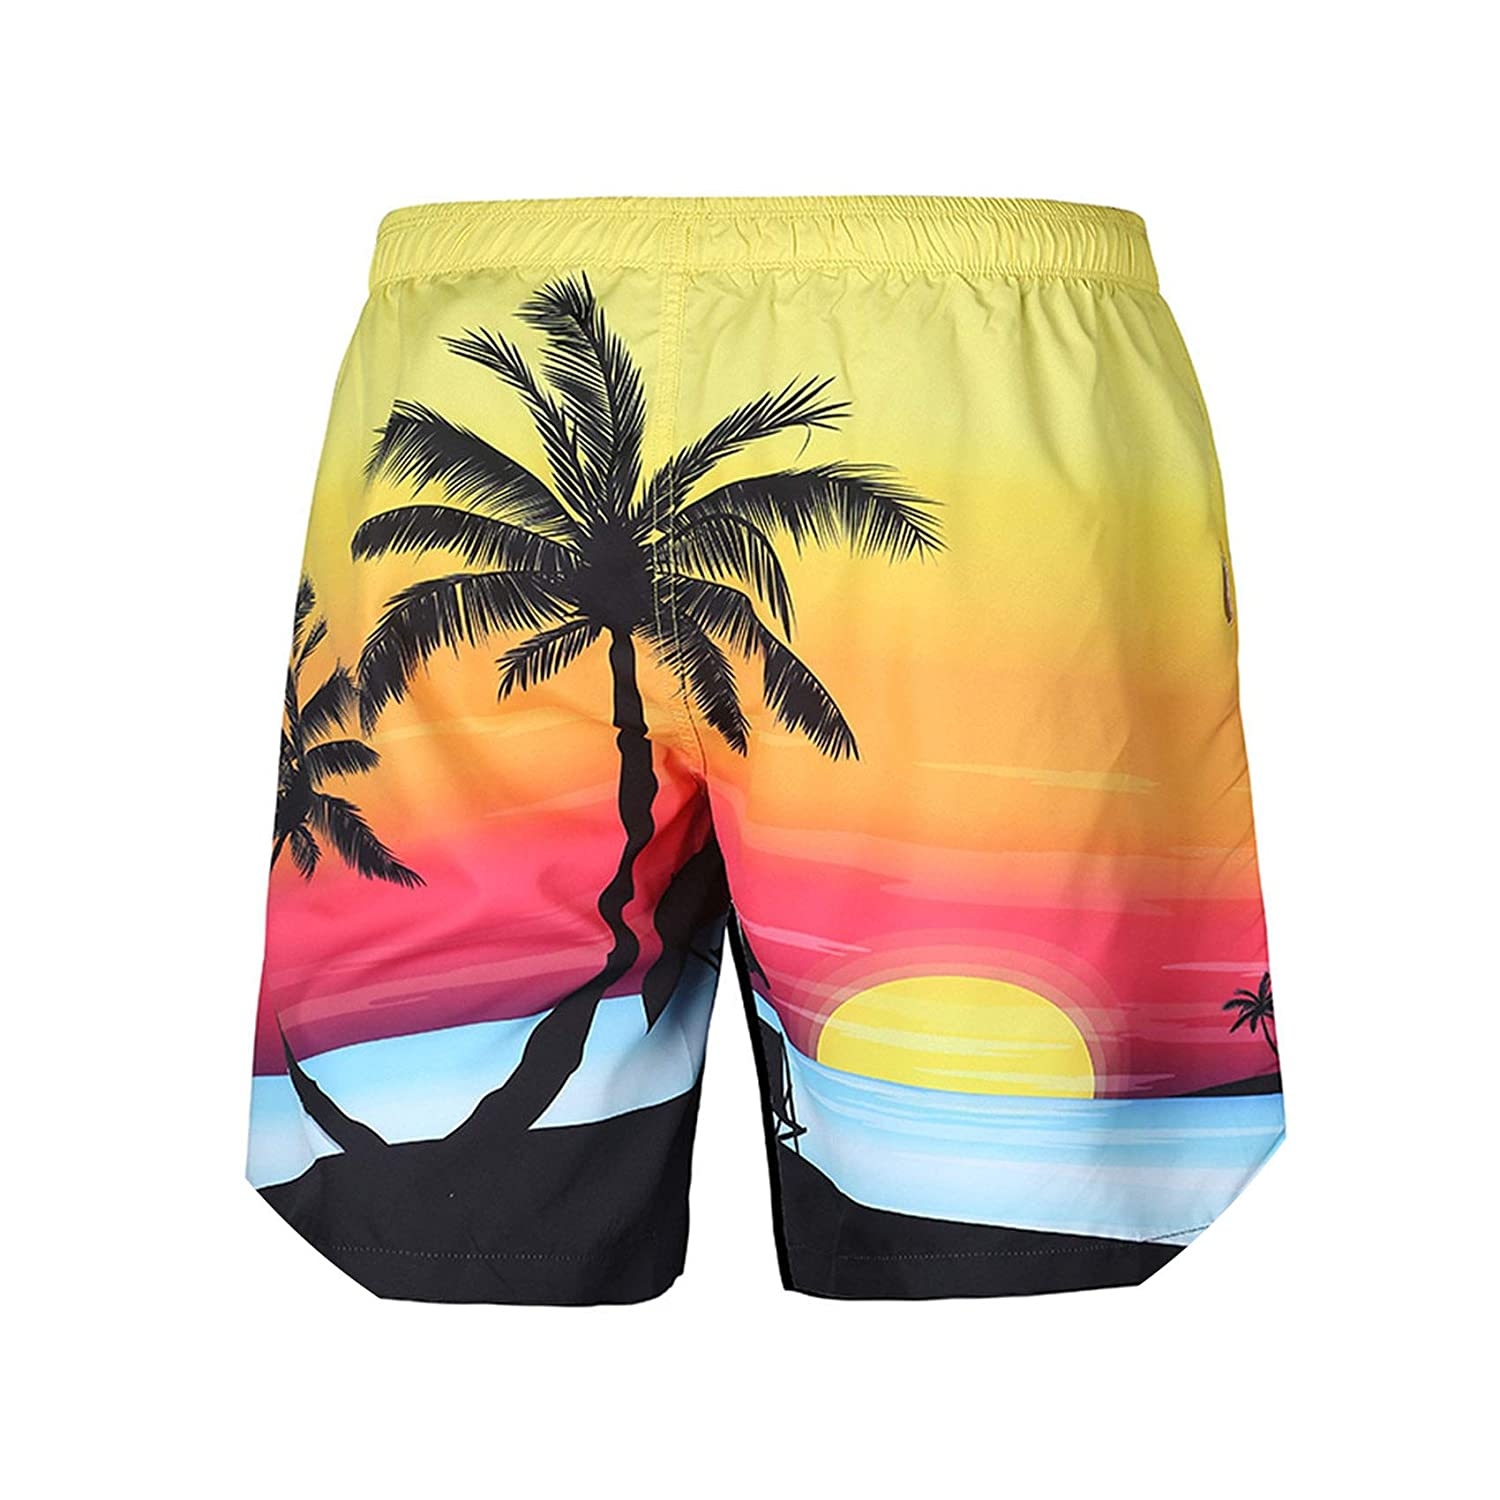 Yanlian1 2019 New Summer Swim New Mens Board Shorts Beach Shorts Surfing Marca Men Boardshorts